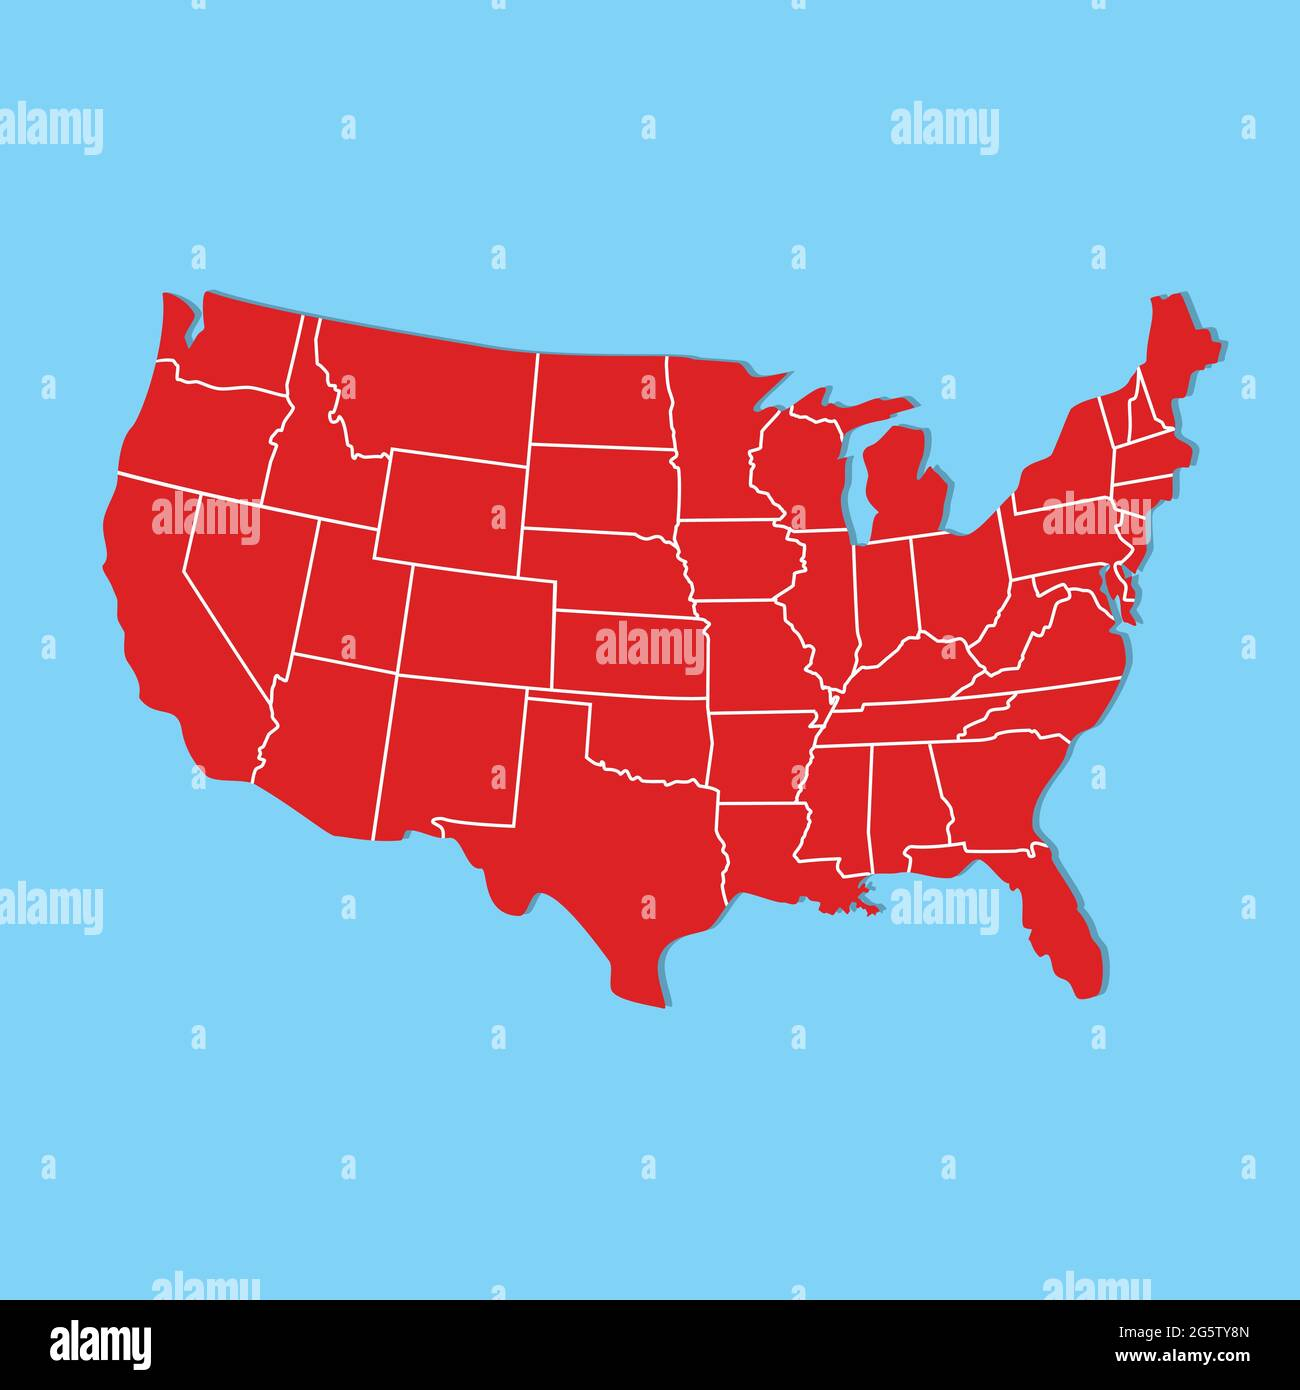 Available also through the library of … Vector Illustration Usa Map States And Territories Of United States Of America Stock Vector Image Art Alamy